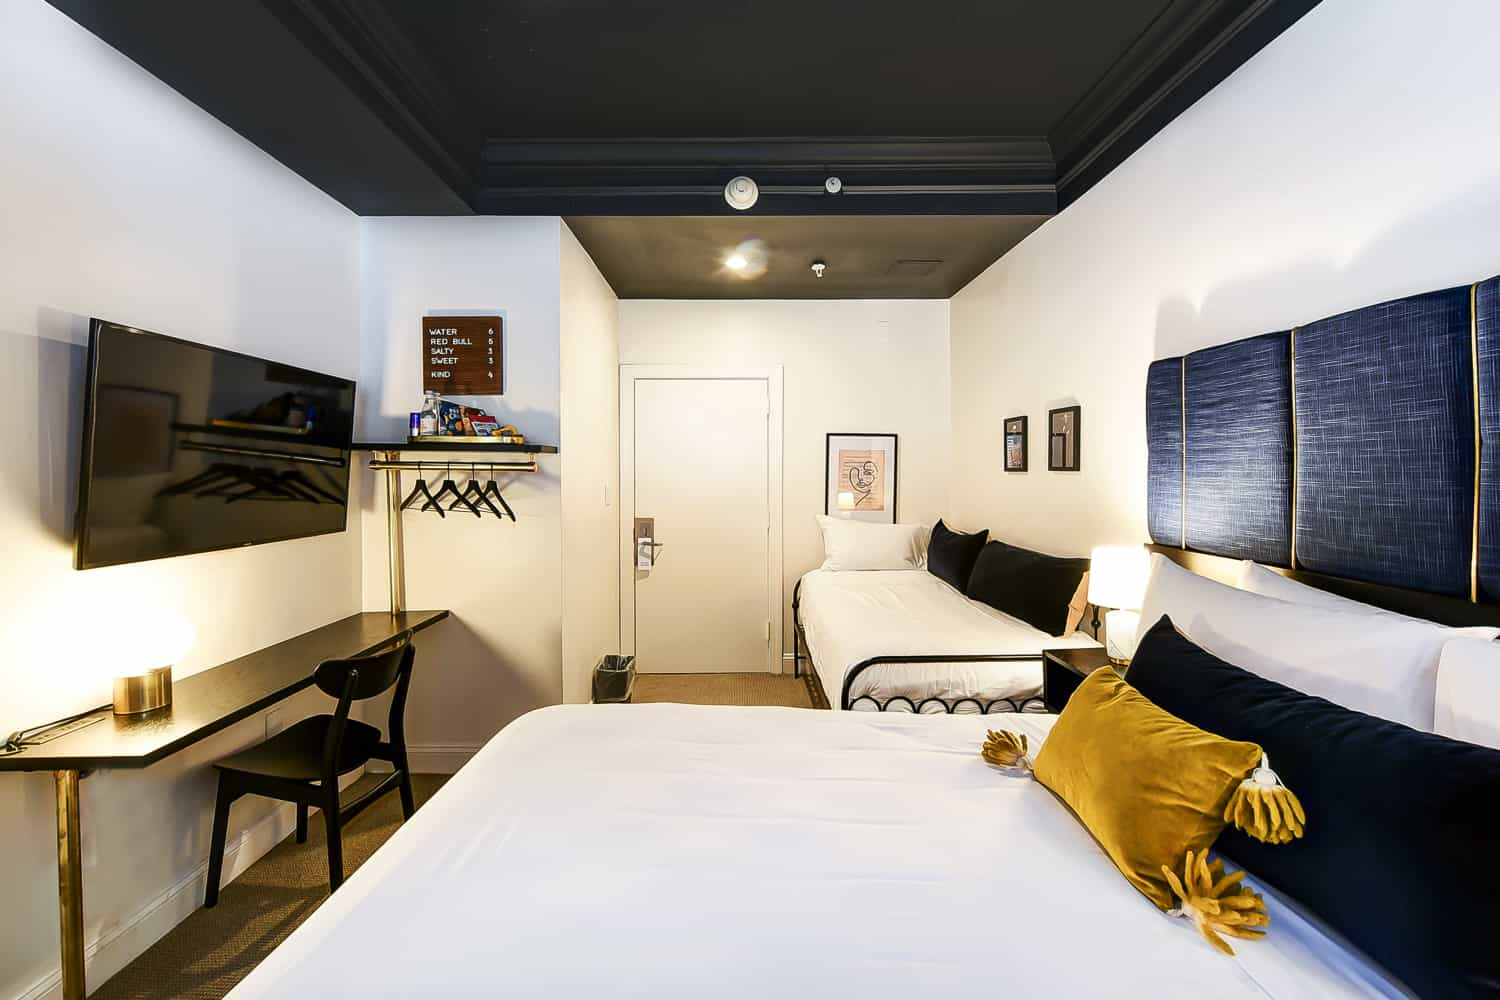 Dupont Circle Embassy Inn by FOUND - Rooms - Queen Studio